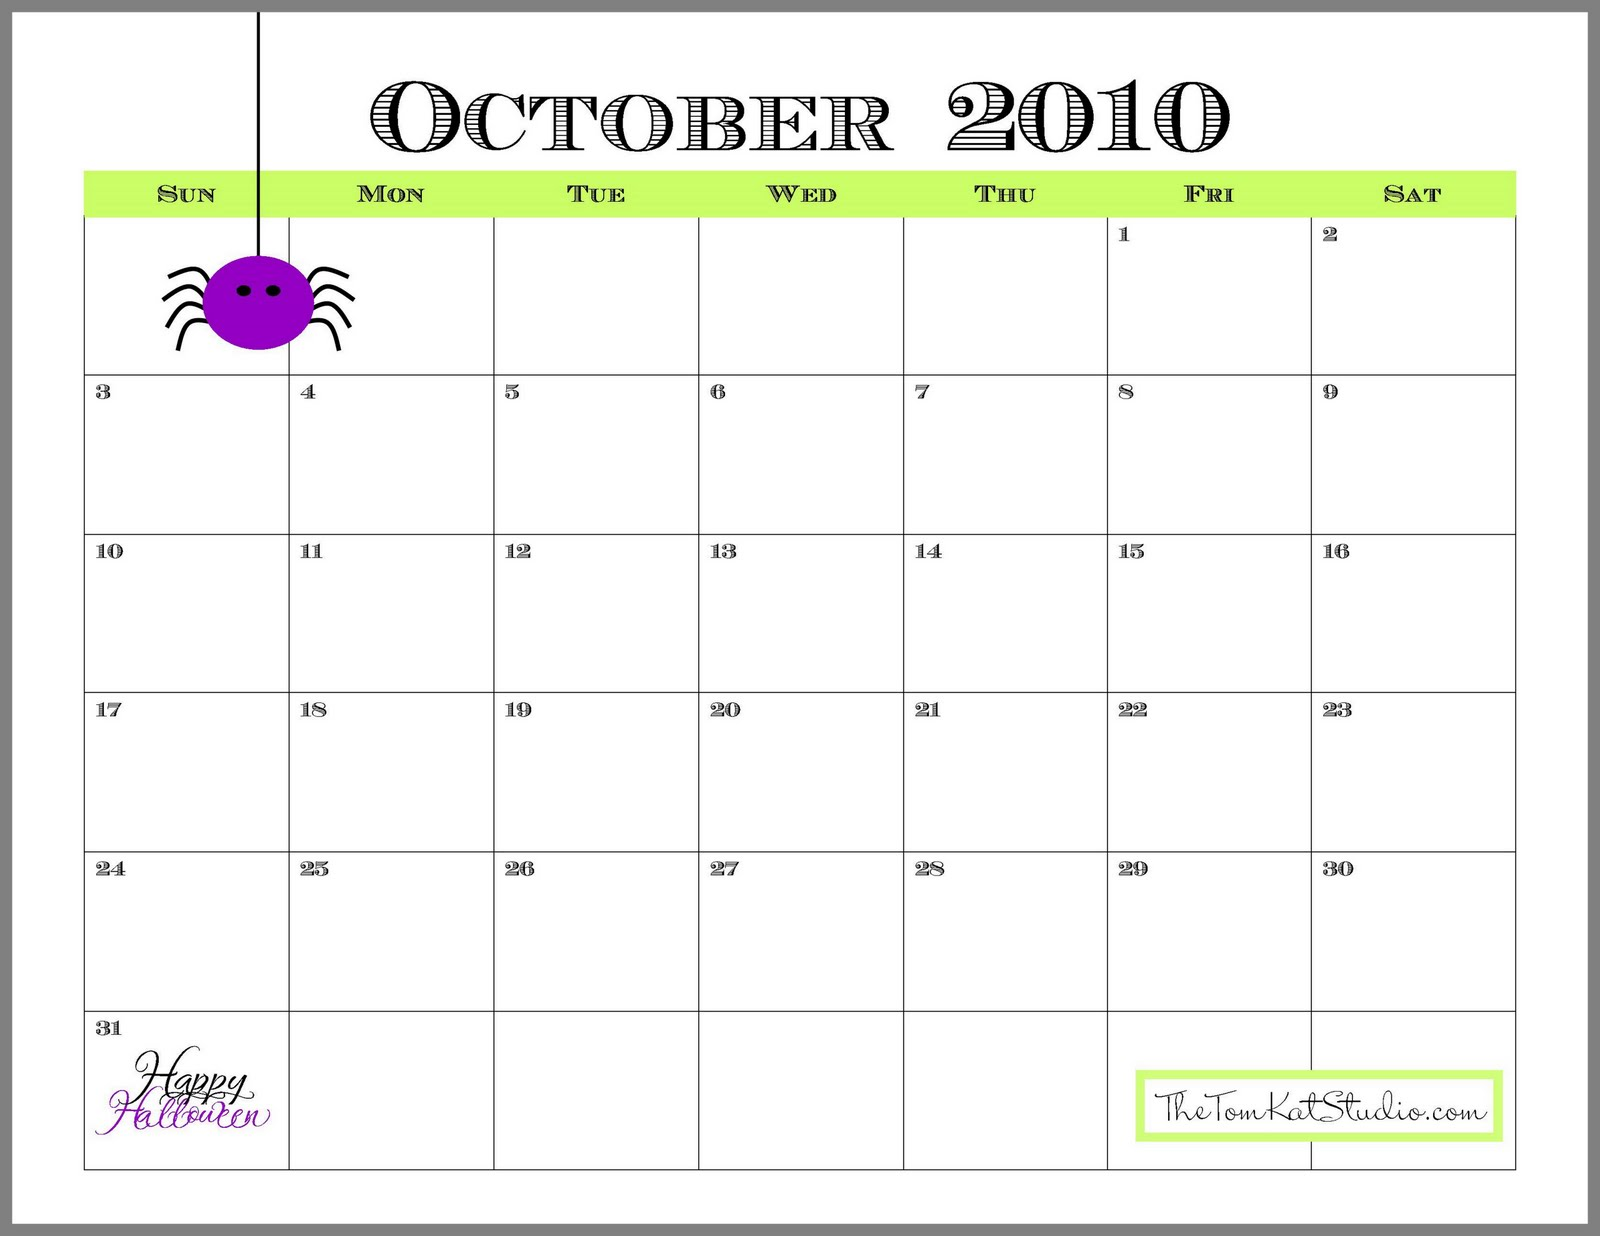 almost October so here is your free printable calendar for the month gJTidHI4